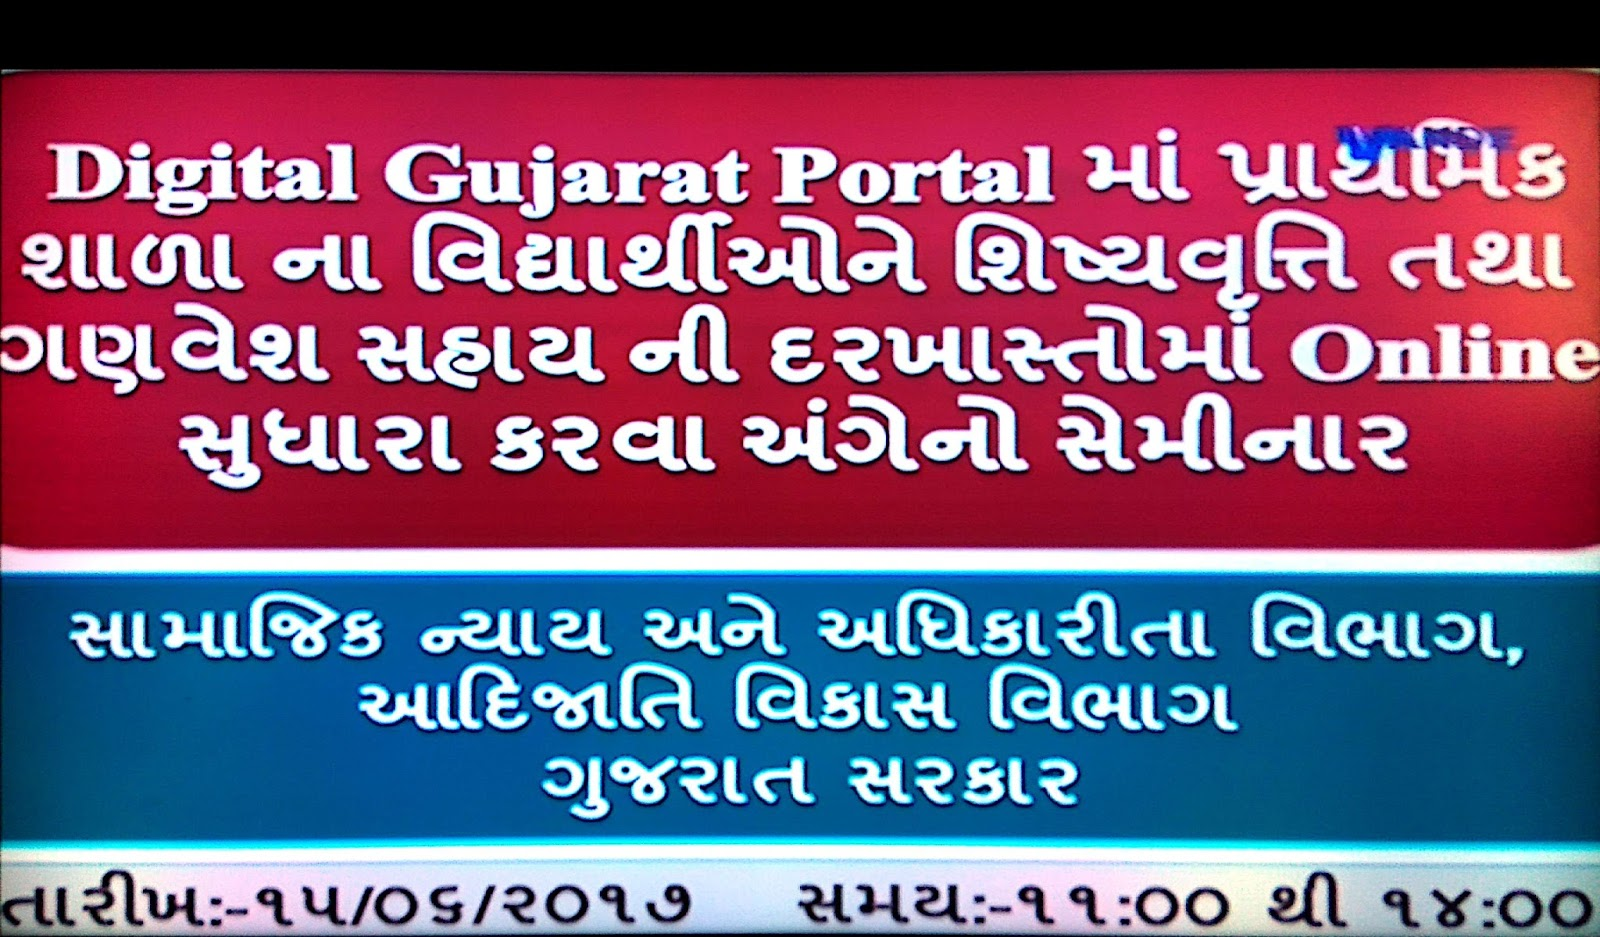 Online color voter id card gujarat - Online Scholarship Ma Name Mis Match Ma Thayel Bhulo Ane Account Number Related Bhulo Jova Malel Chhe